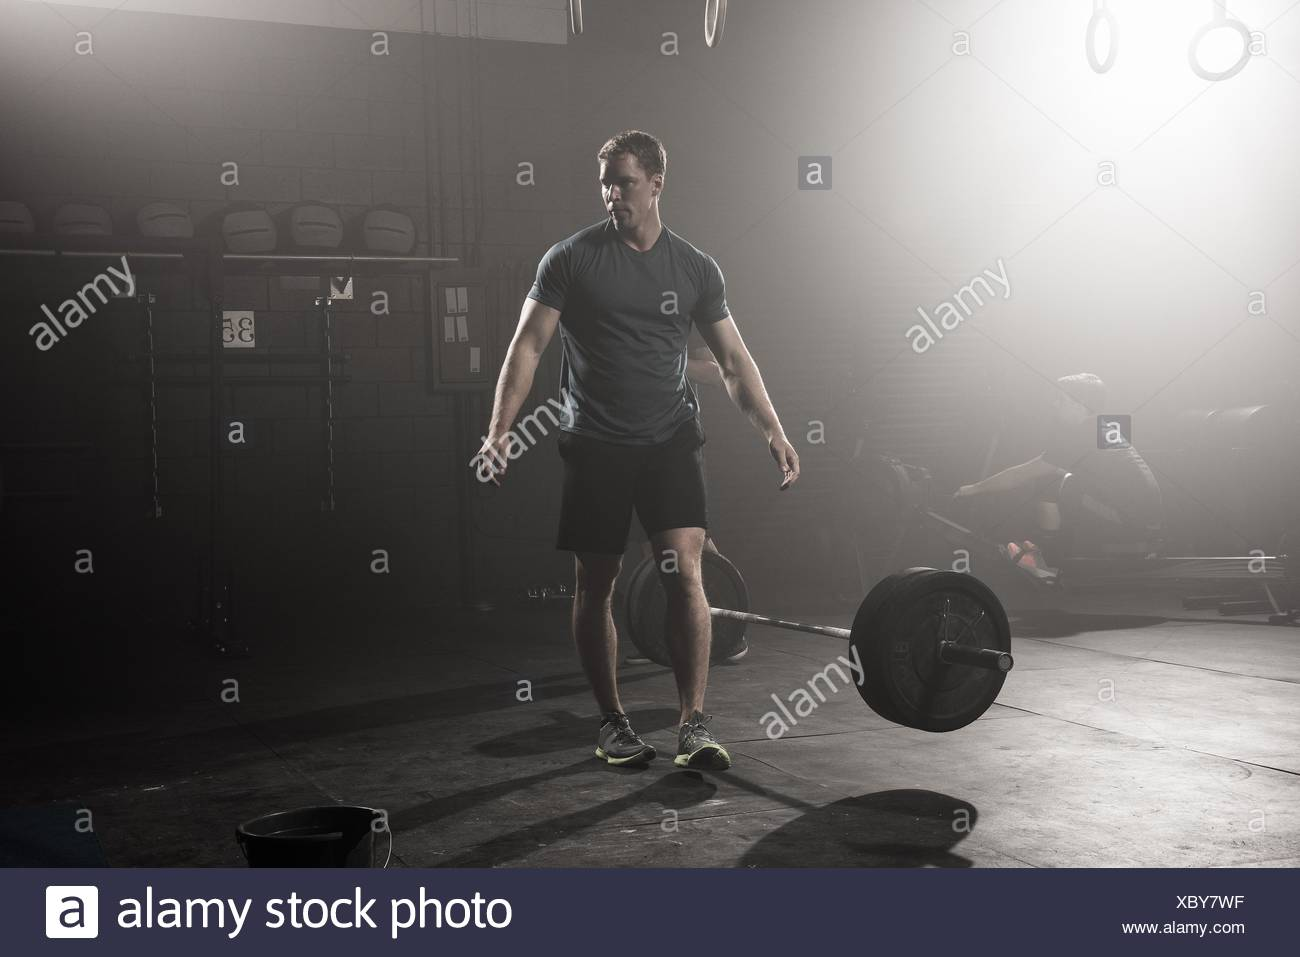 Young man dropping and walking away from barbell - Stock Image